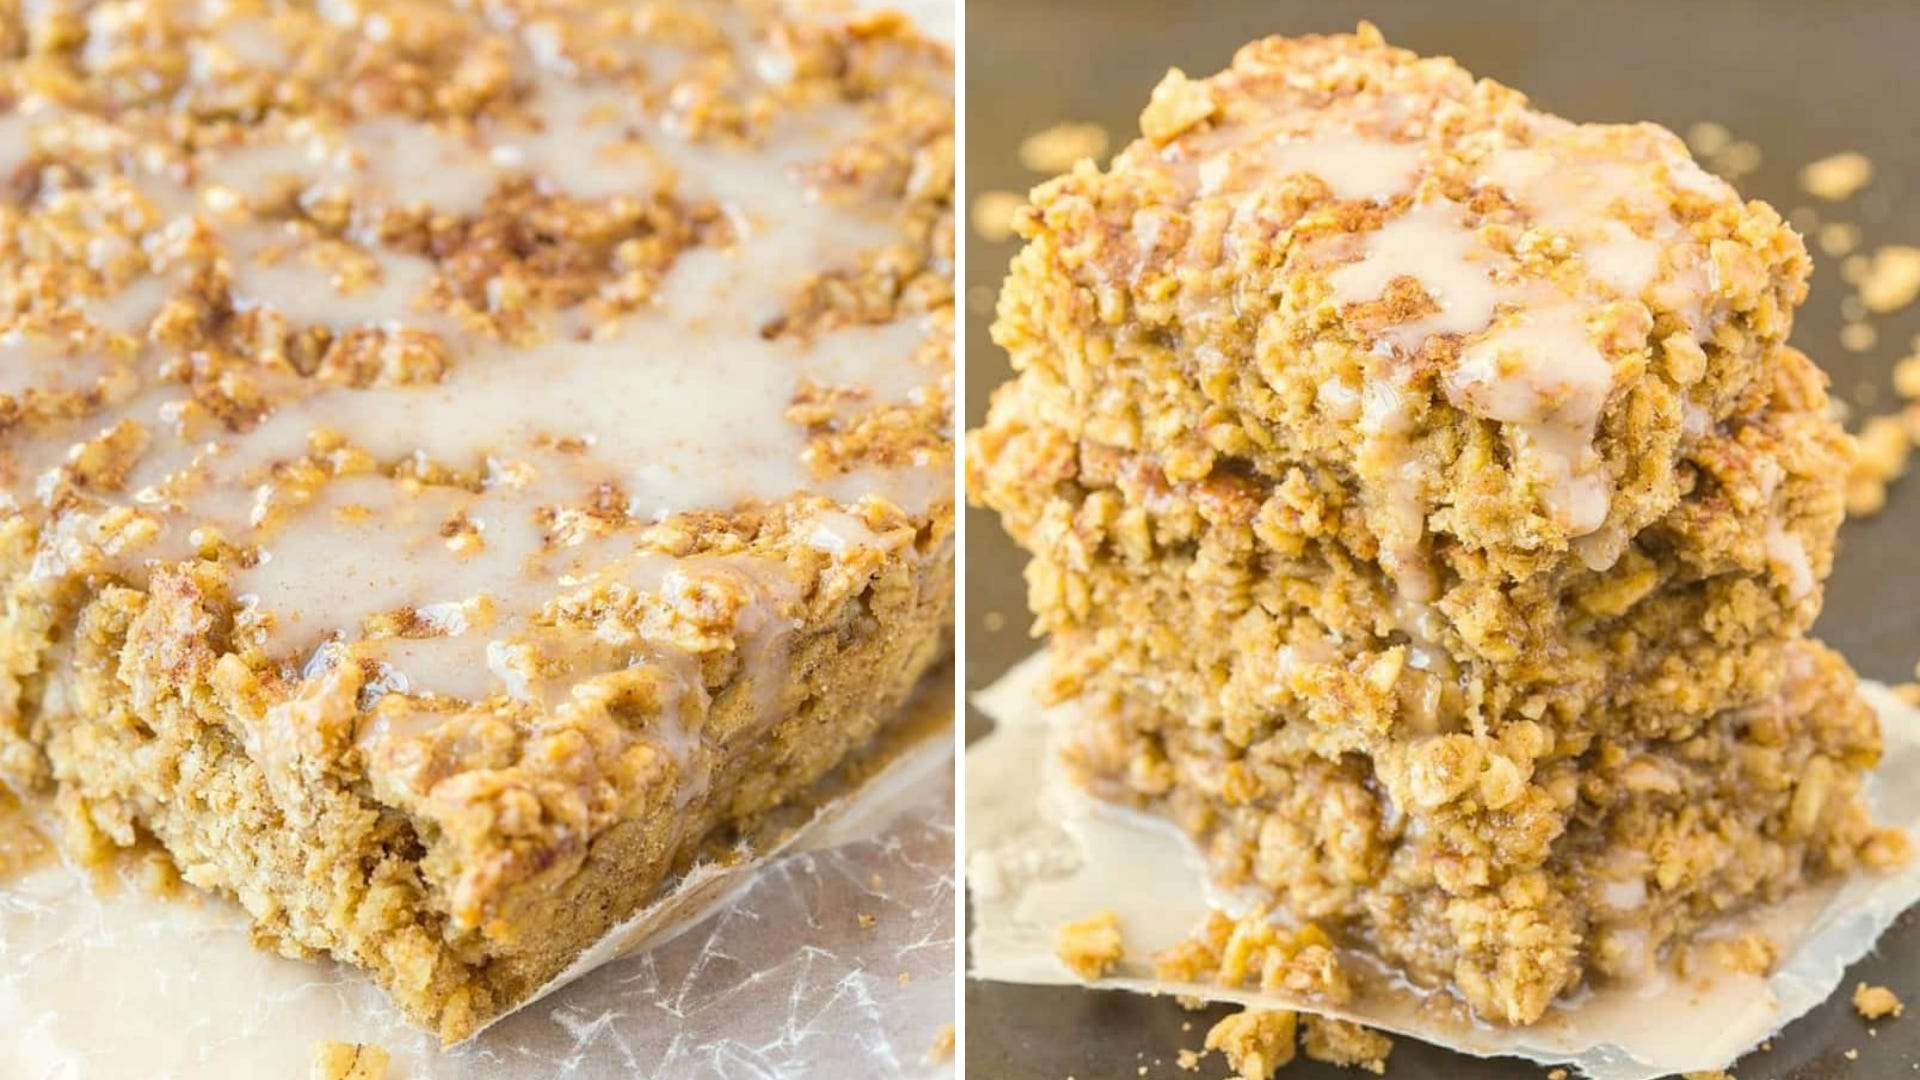 Baked oatmeal with icing on top